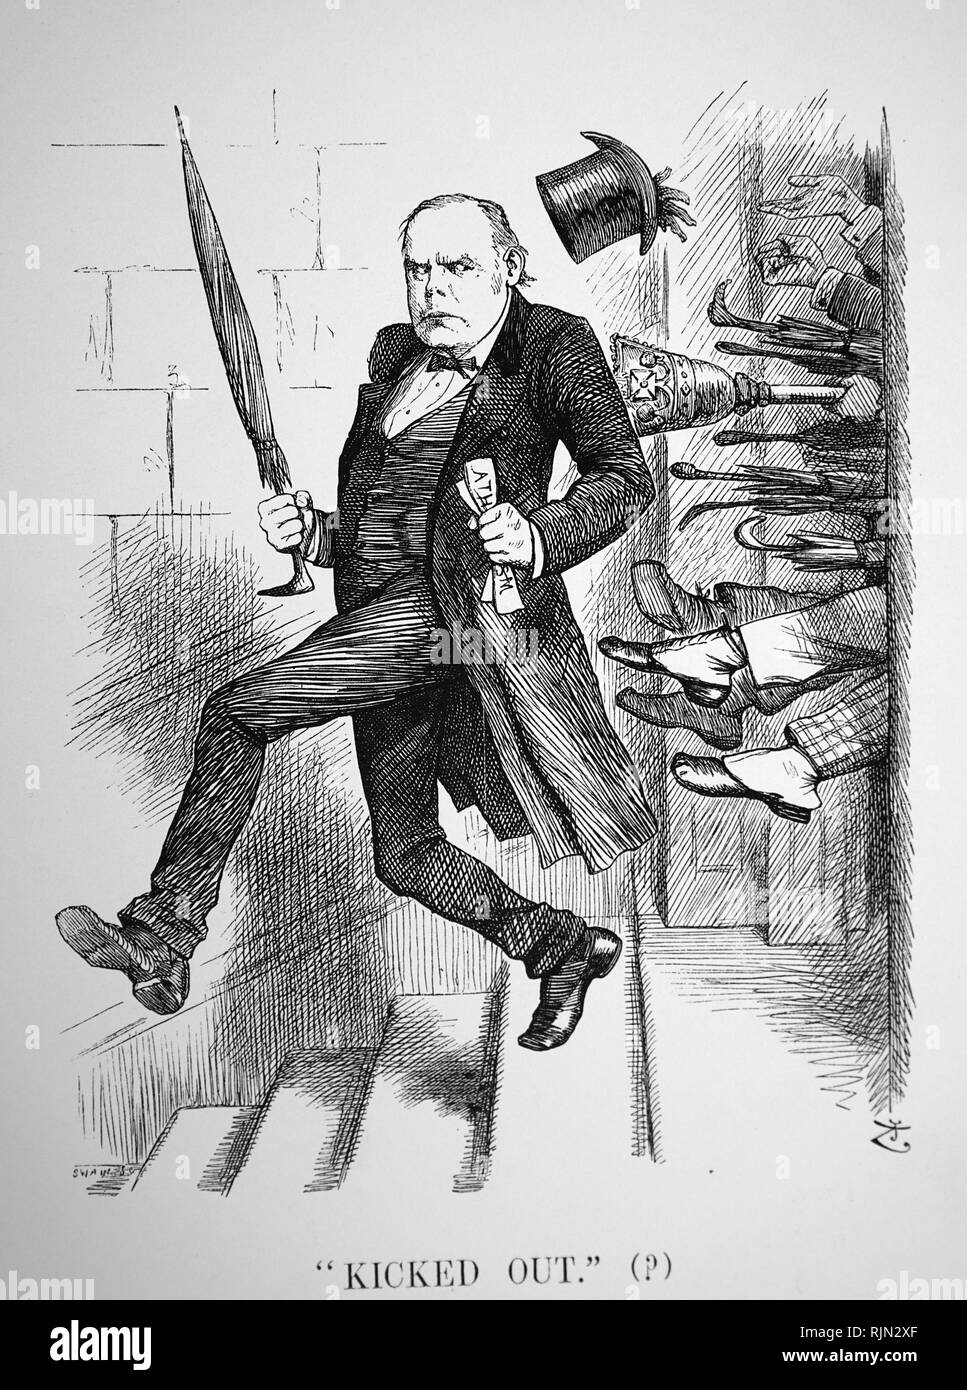 Illustration showing Charles Bradlaugh (1833 - 1891); English political activist and atheist. He founded the National Secular Society in 1866 - Stock Image